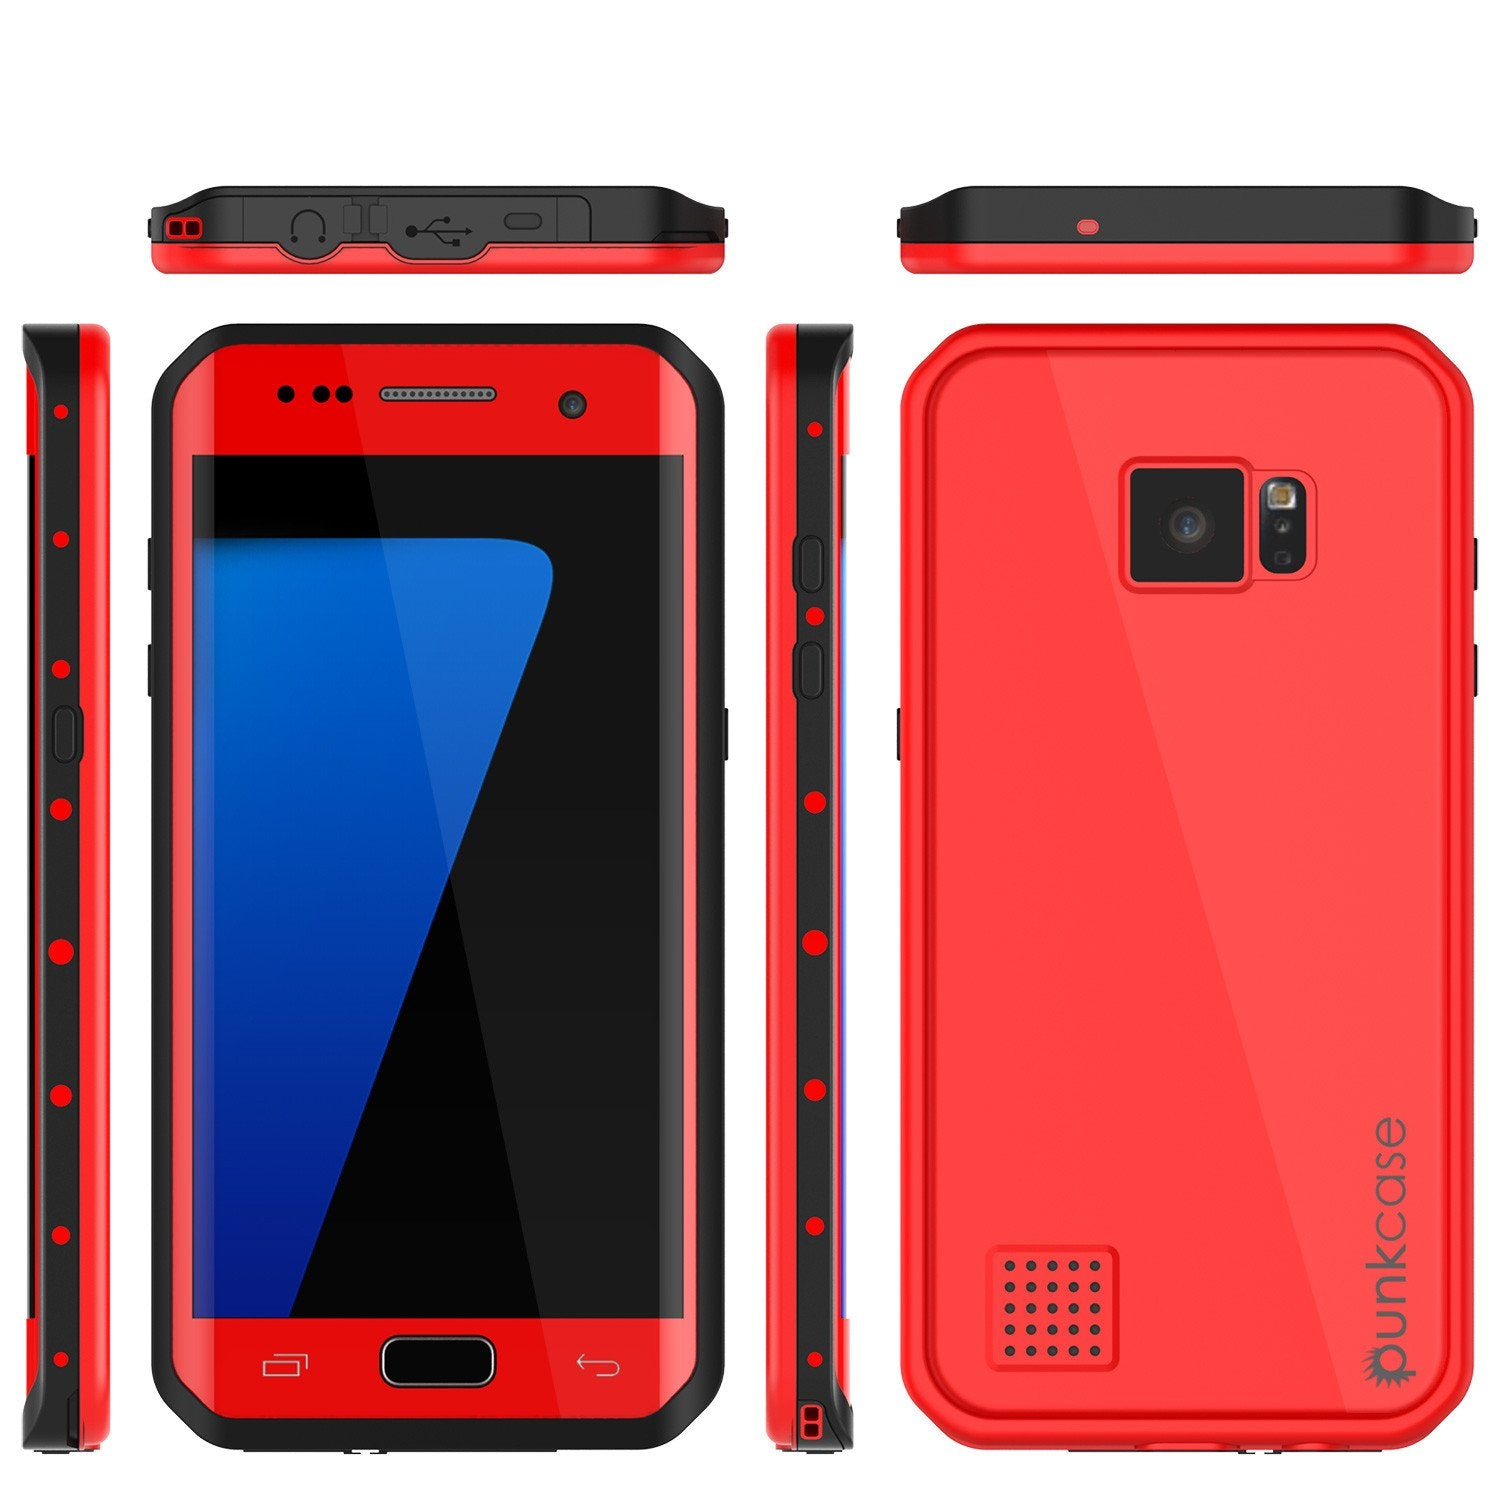 Galaxy S7 EDGE Waterproof Case PunkCase StudStar Red Thin 6.6ft Underwater IP68 Shock/Snow Proof